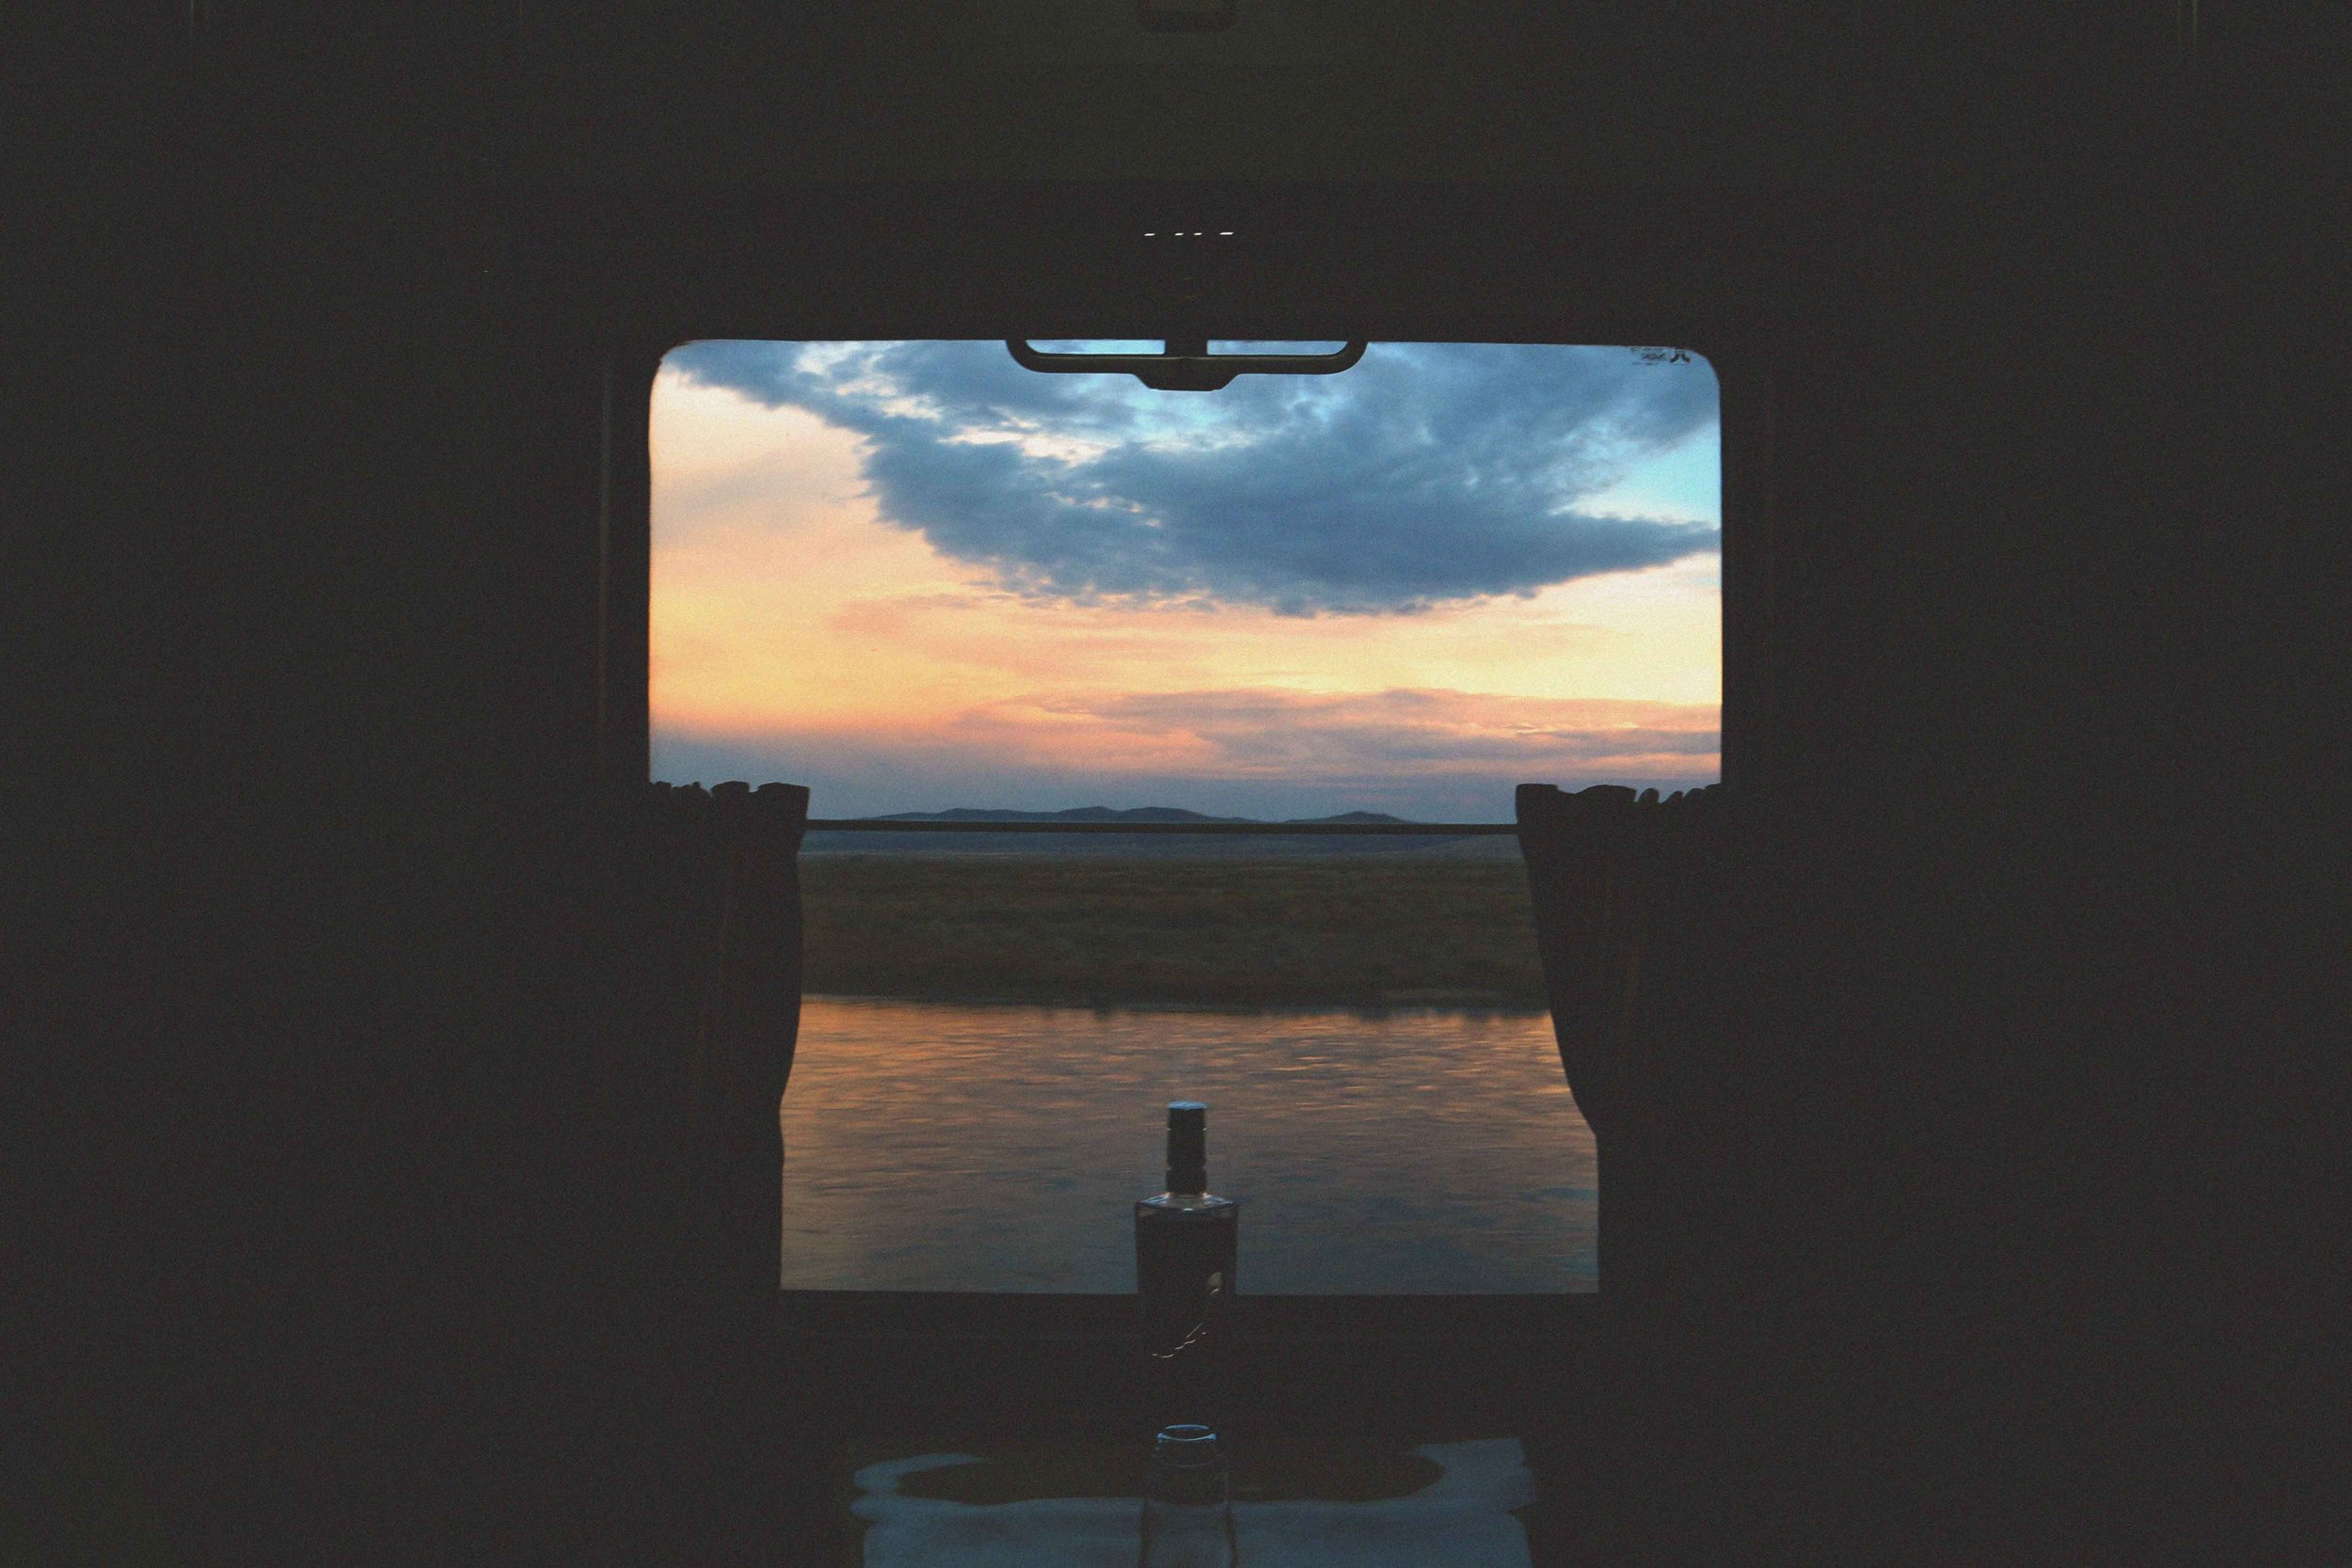 Window view of sunset on the Trans Siberian Train, Russis